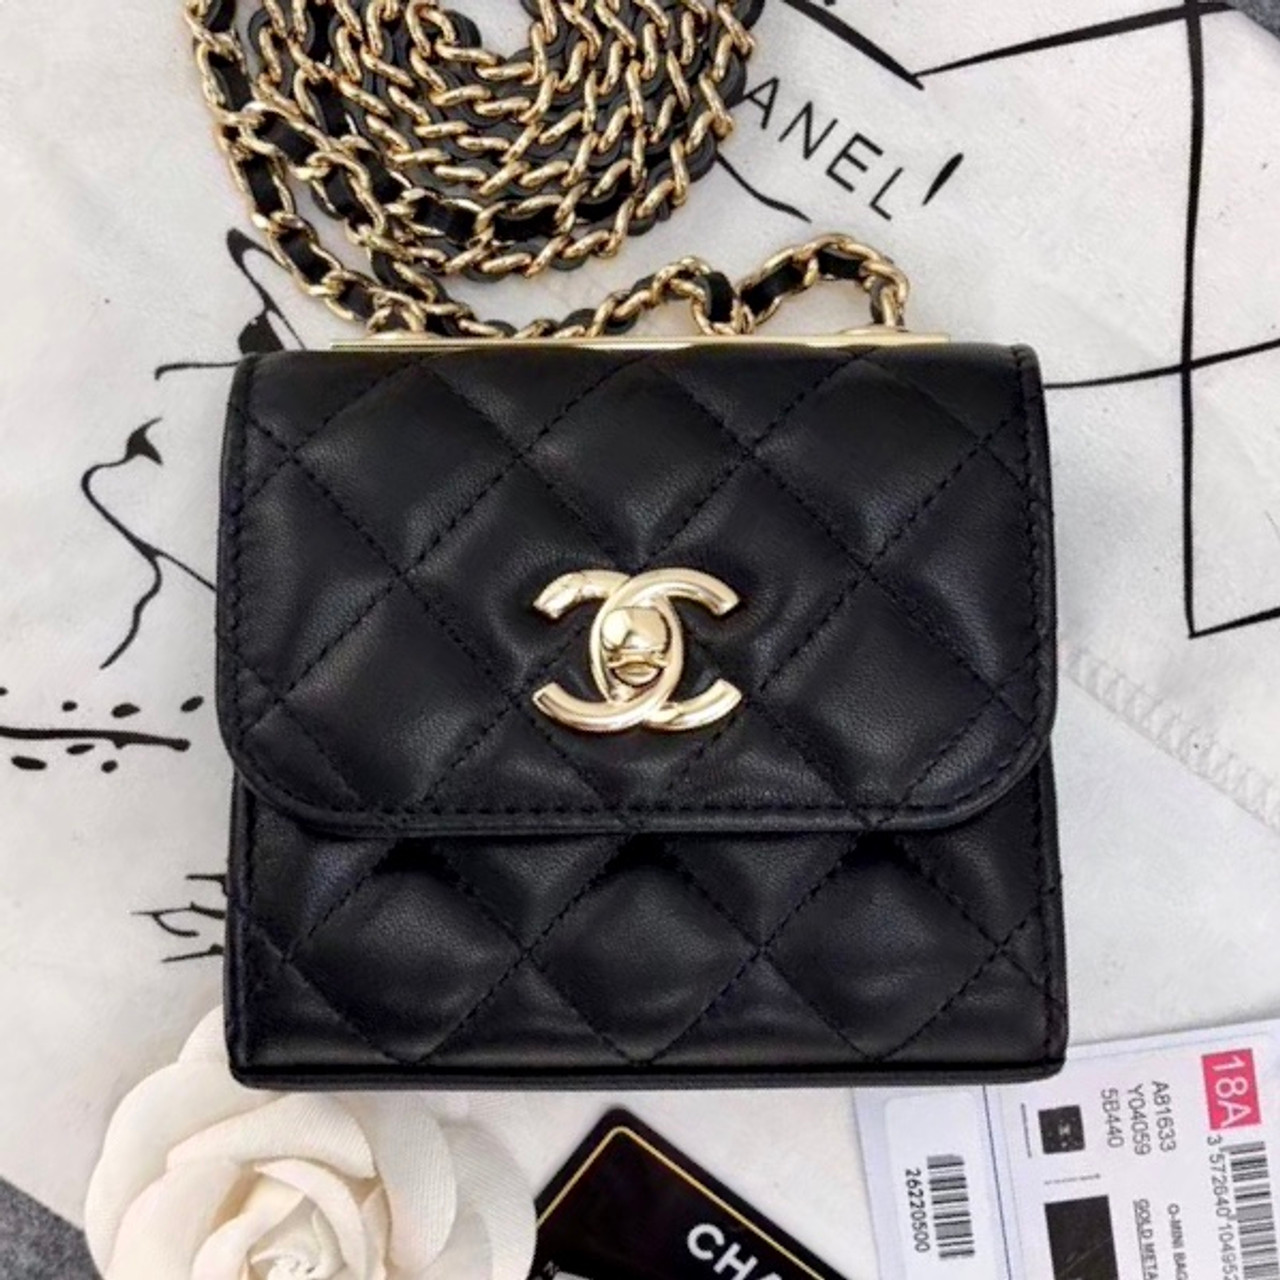 502903a569a8 Chanel Lambskin Chain Elegant Style Shoulder Bags[ 2019 Cruise ] Black